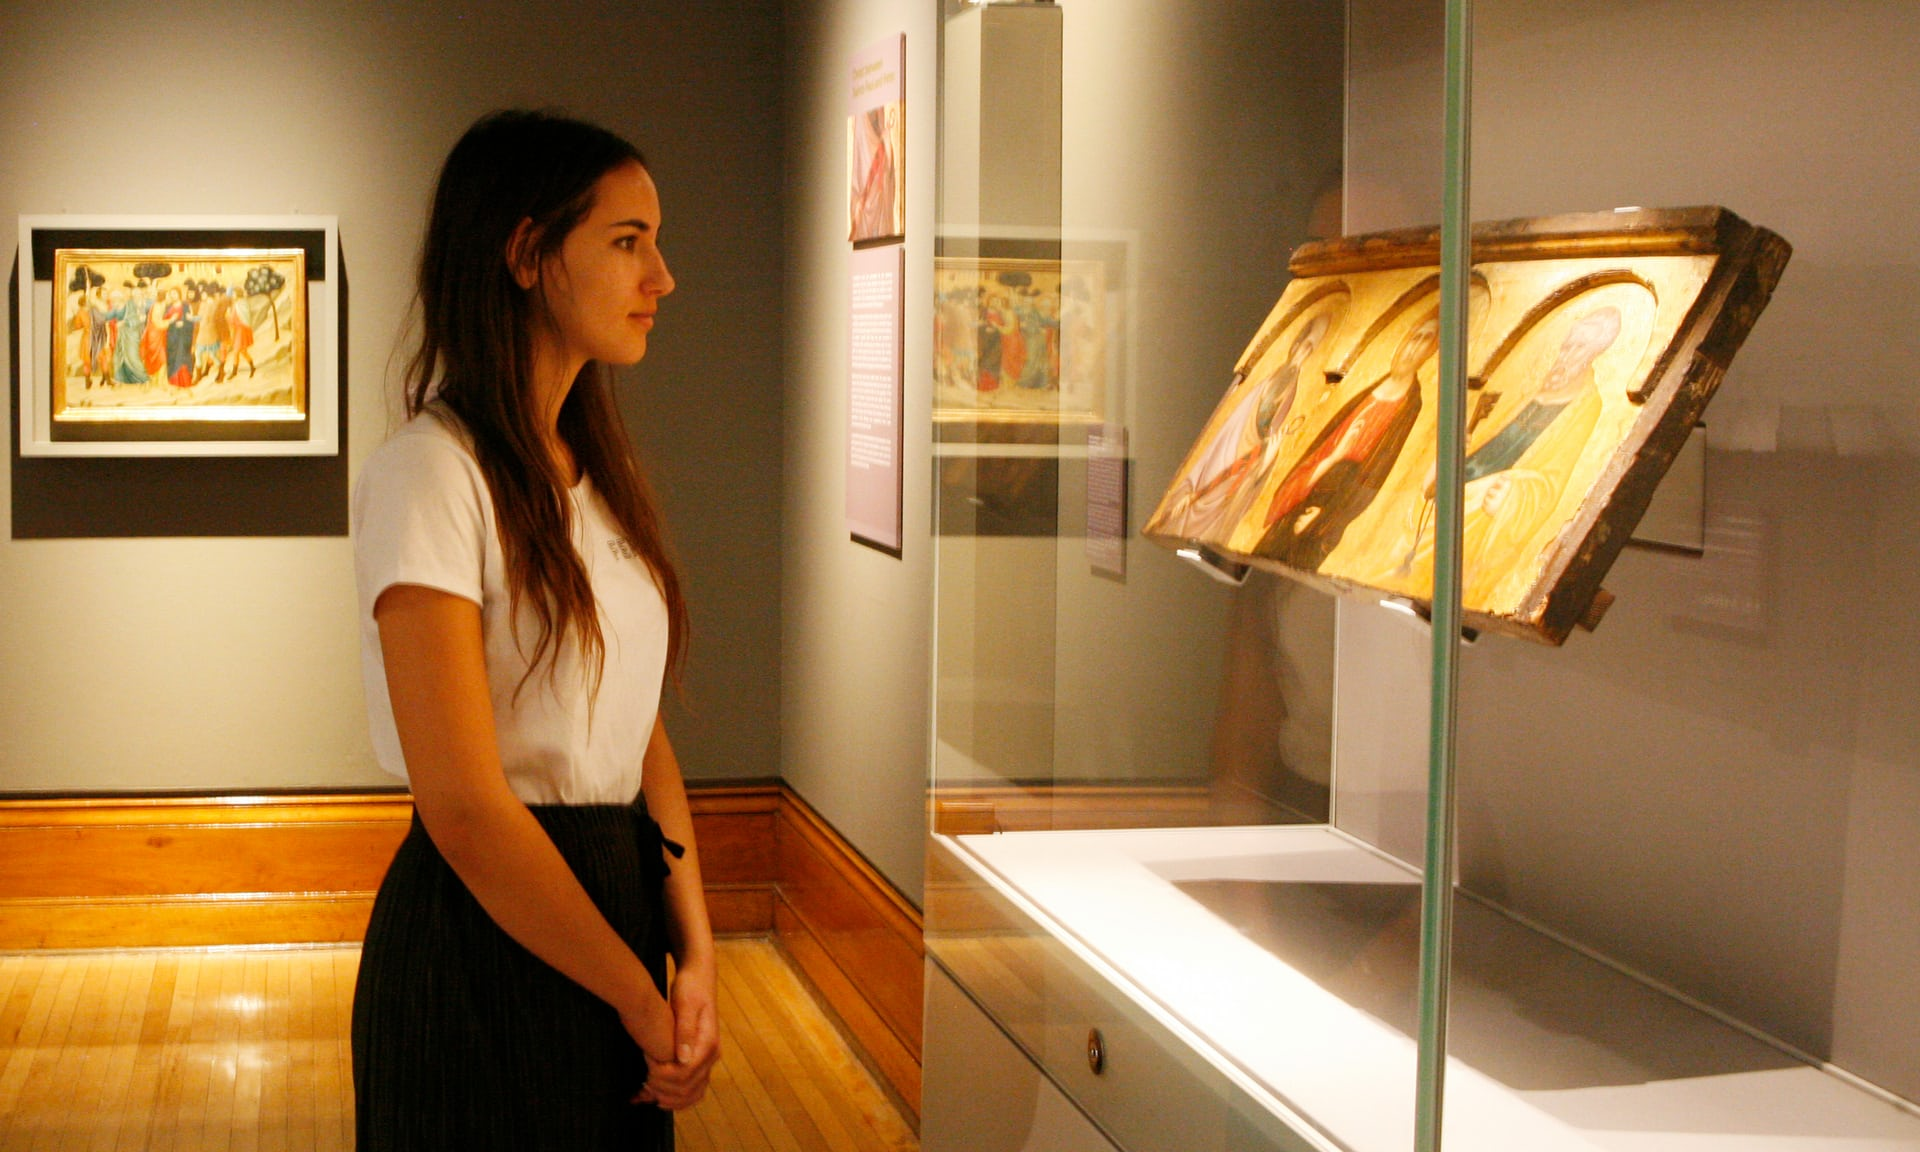 Young woman looking at a an altarpiece painting